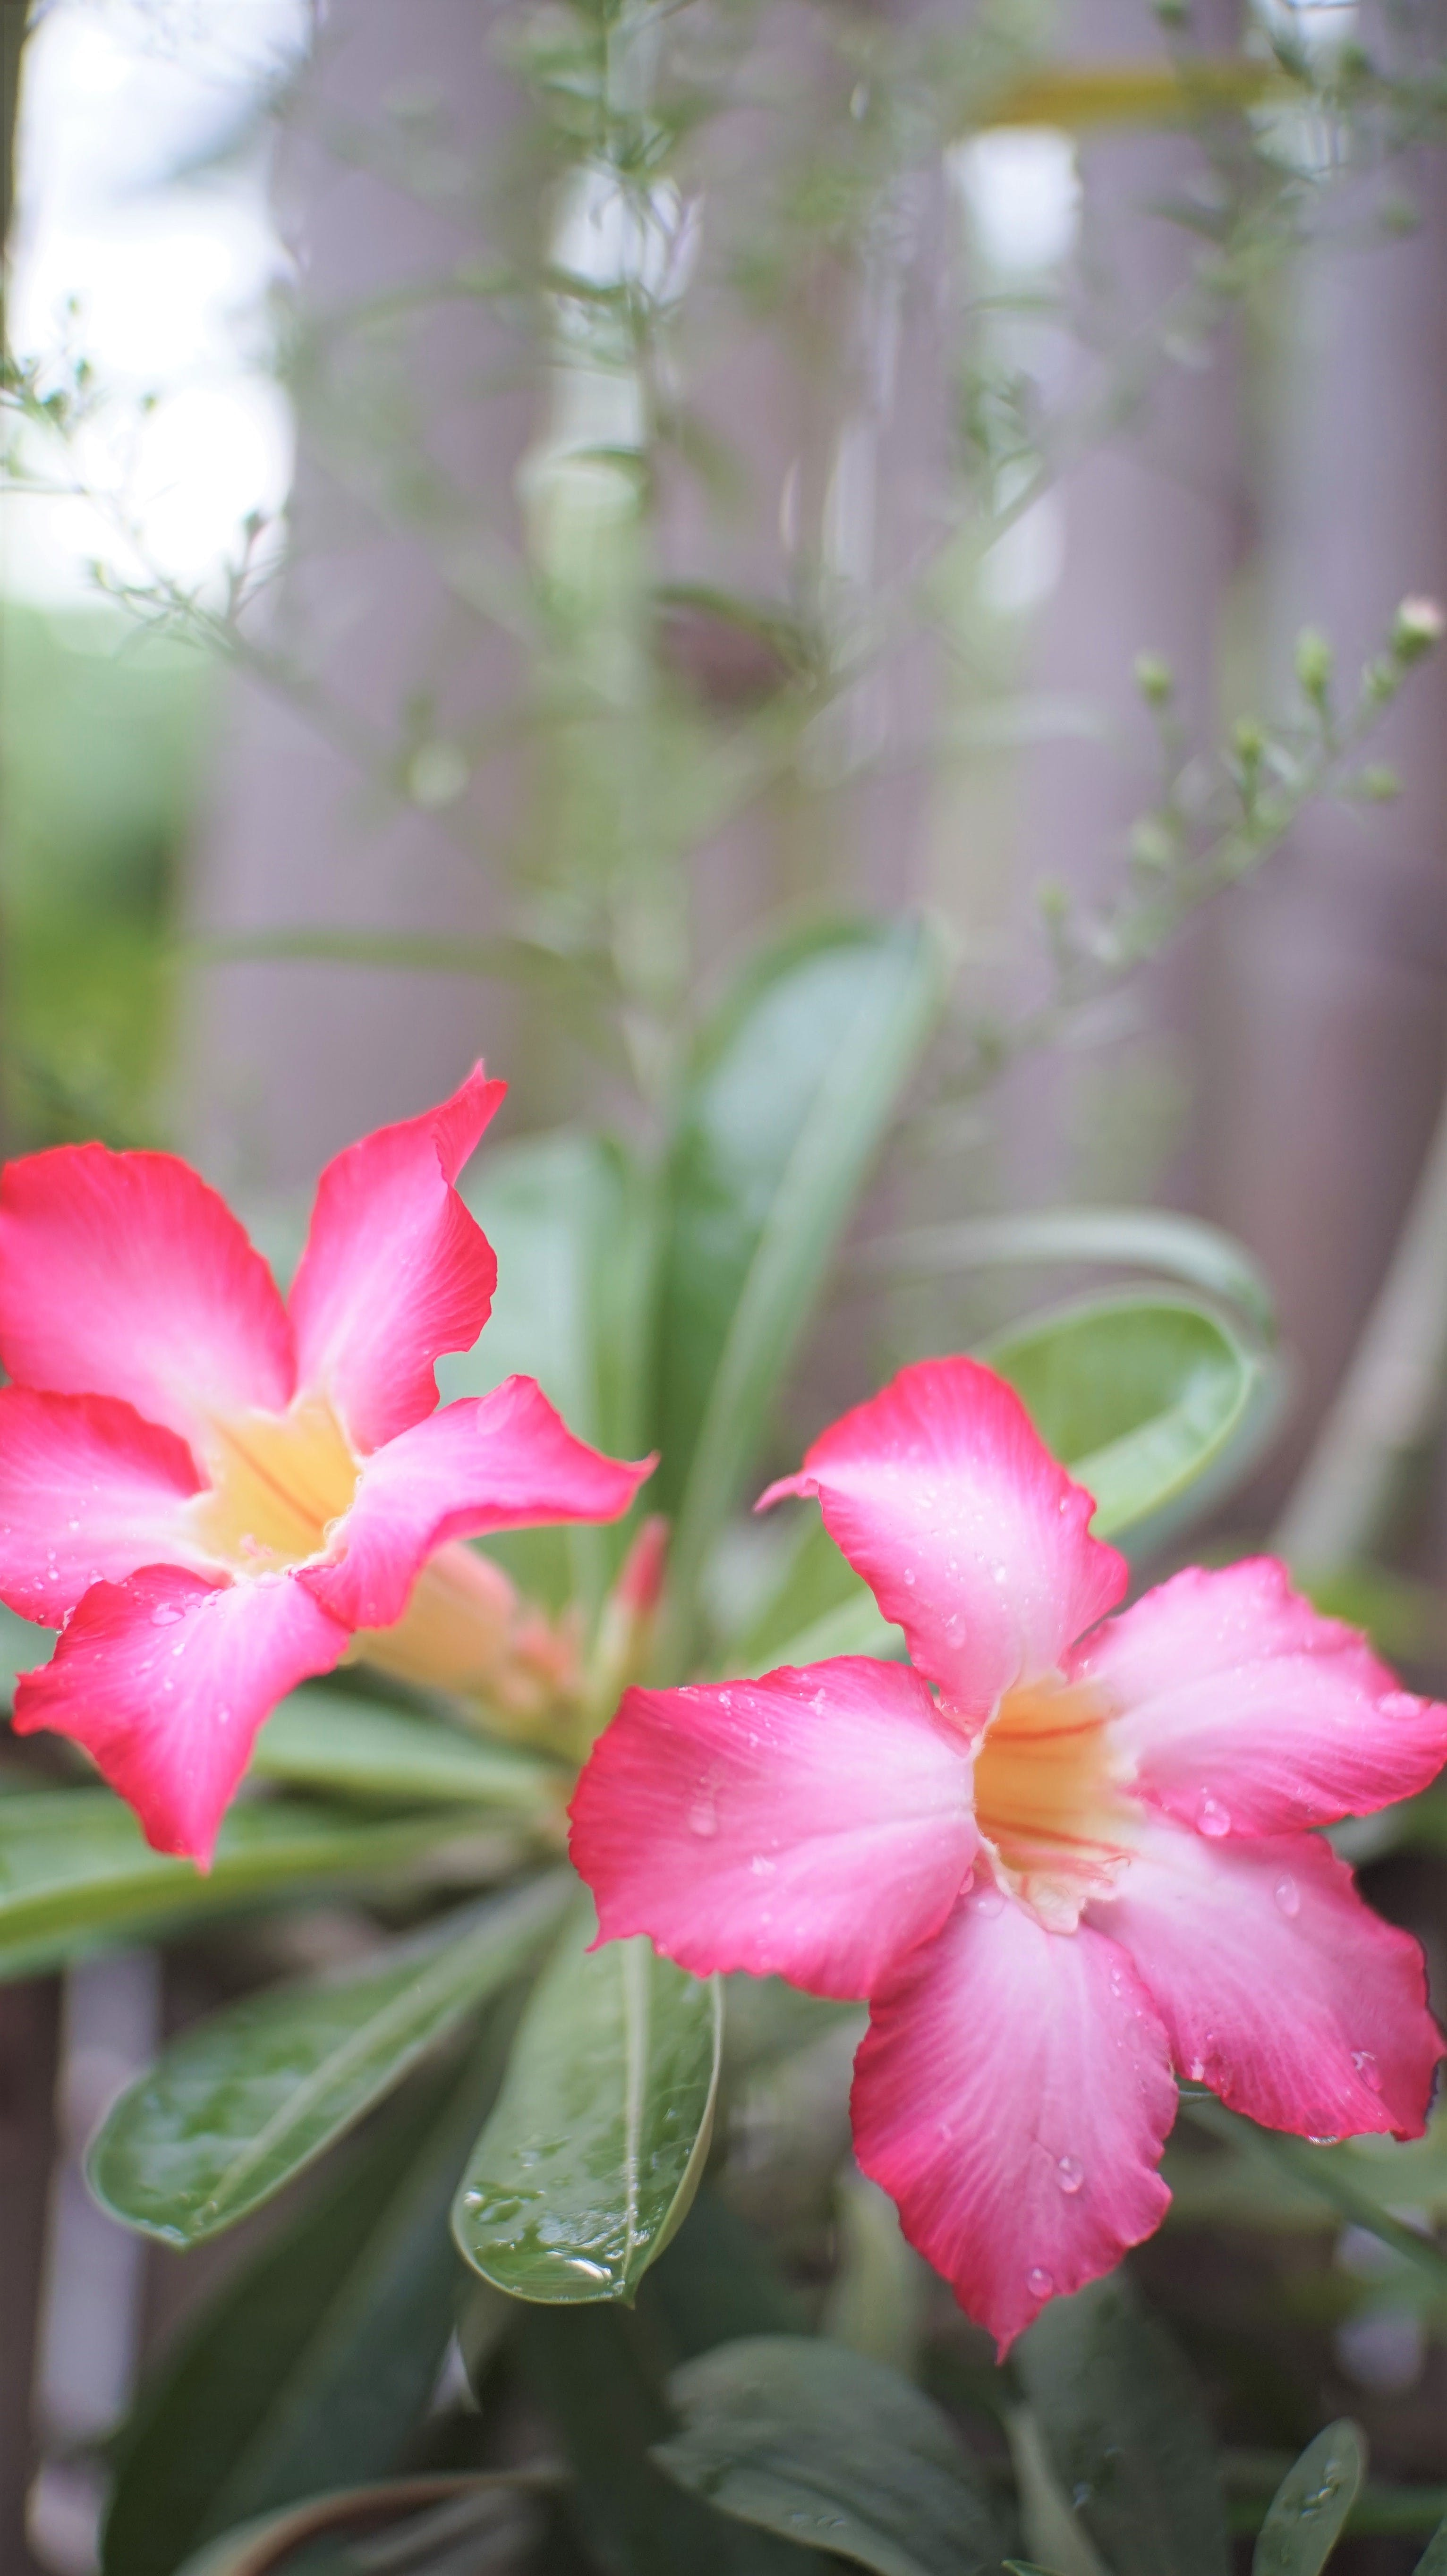 Free stock photo of flowers, morning flower, pink flowers